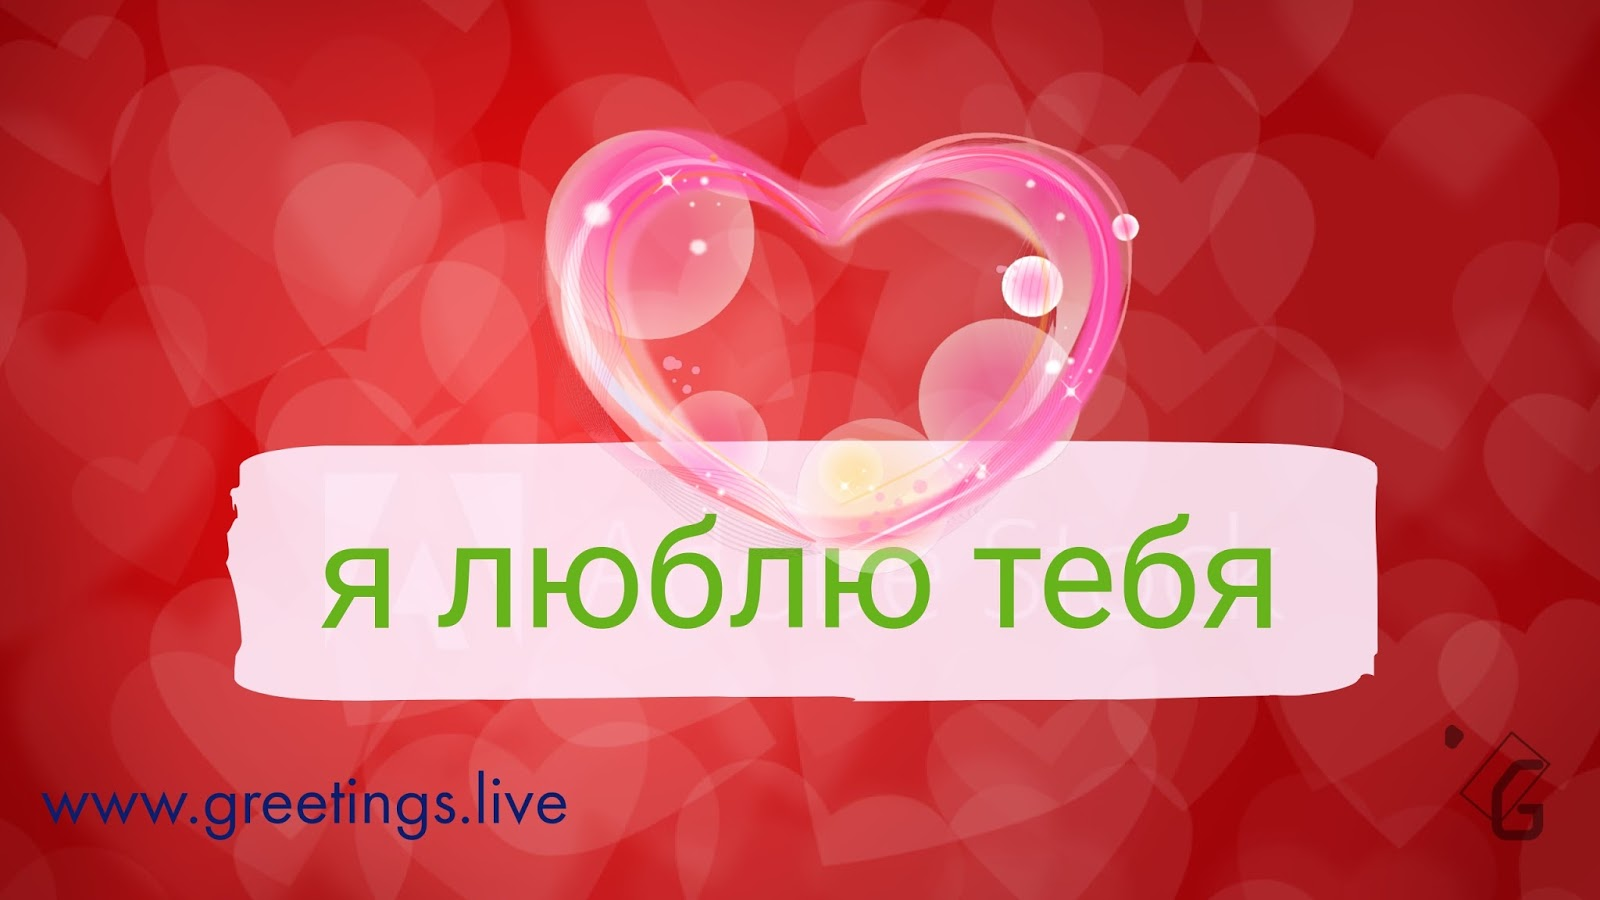 Greetingsve hd images love smile birthday wishes free download i love you in russian greetings live 2018 kristyandbryce Image collections